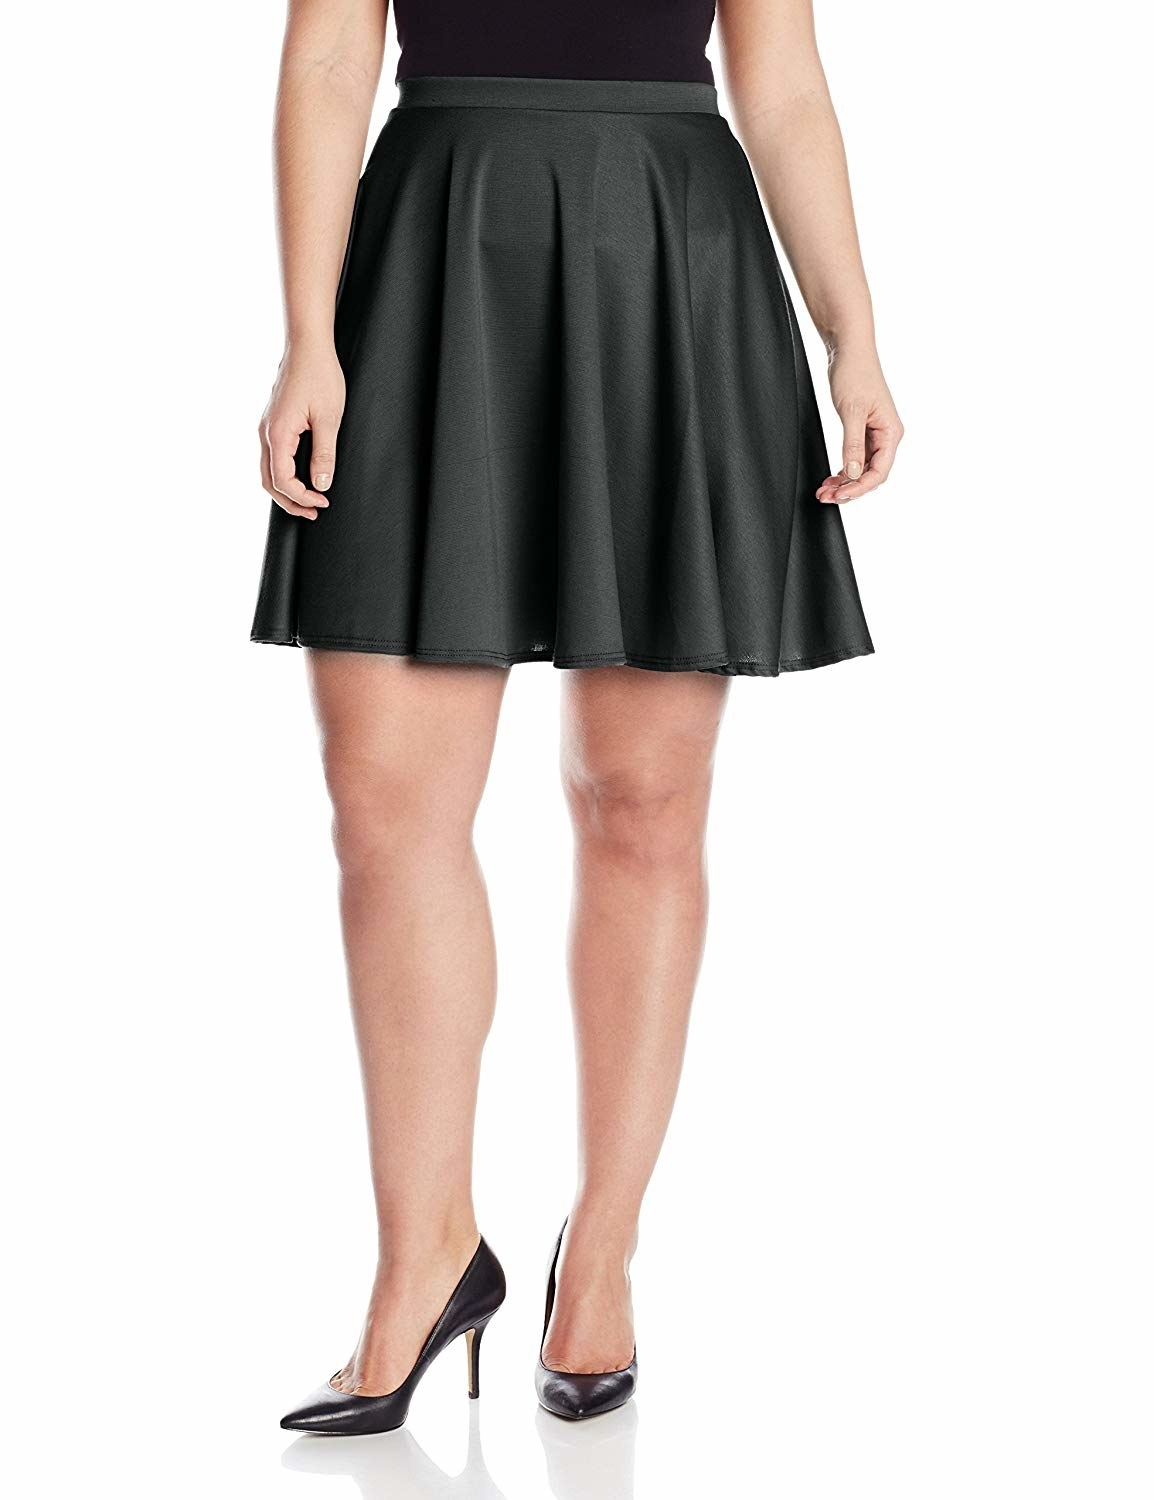 """Promising review: """"I ordered both the black and the blue skirts in 2X and they are now staples in my wardrobe. I love that this skater skirt is slightly longer than most I order. Now I don't have to worry about my butt showing! This skirt is great to wear to the office with a nice blouse, casually with a cute tank top, and even to parties or going out with more fun tops. There's nothing not to like about it."""" —Reyna VillaGet it from Amazon for .99+ (available in sizes 1X-3X and in two colors)."""